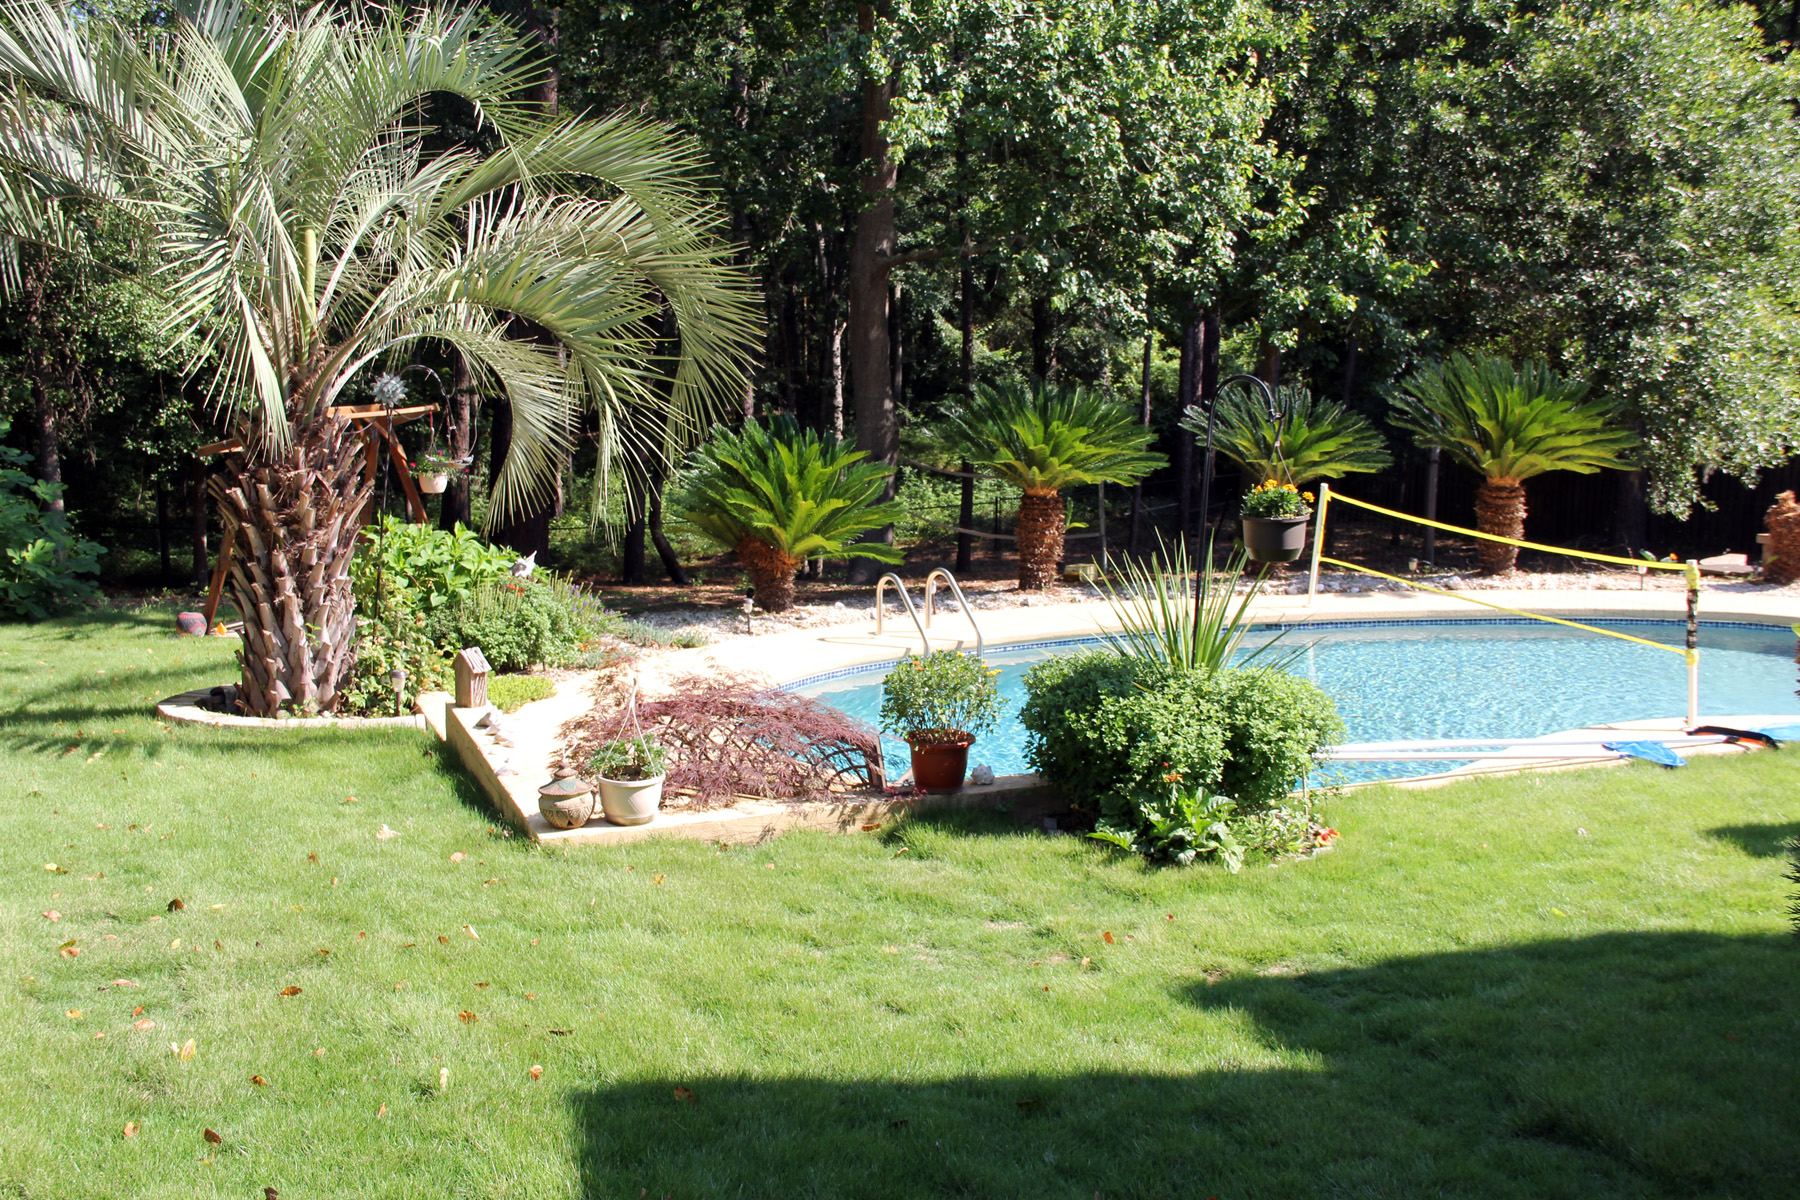 Backyard Clean Up Backyard Cleanup In North Augusta Landscaping Lawn Care And